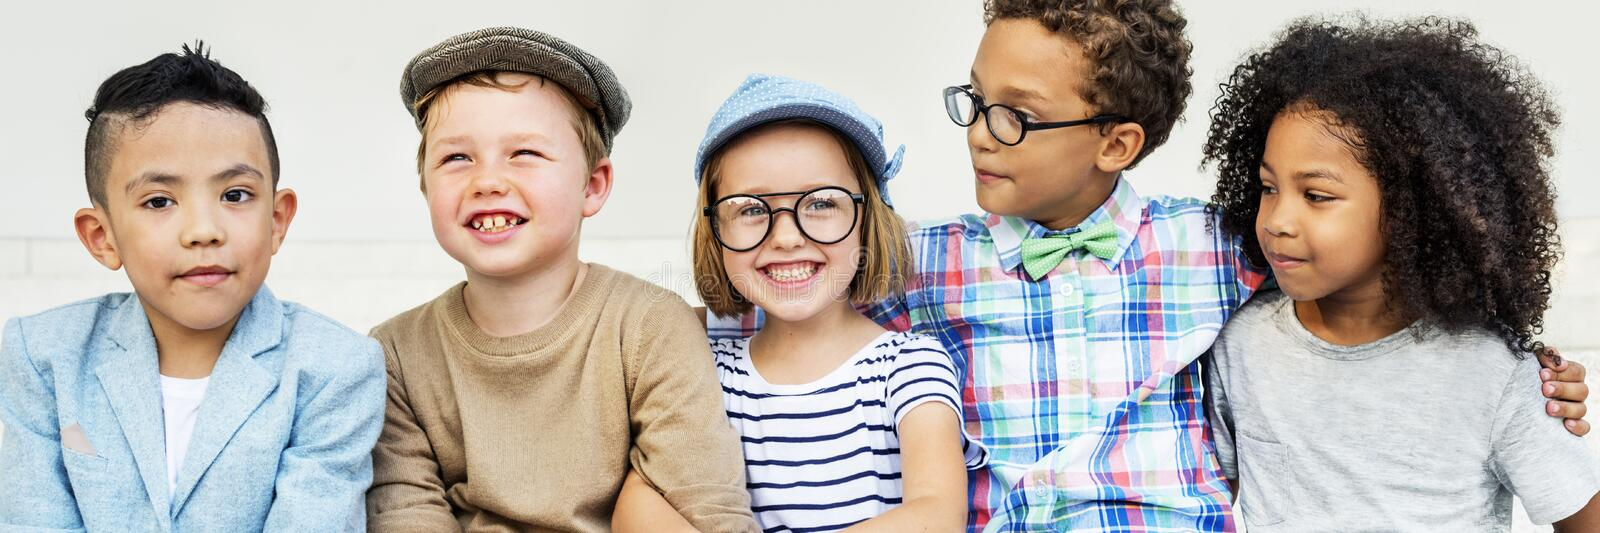 Children Friendship Togetherness Playful Happiness stock photography